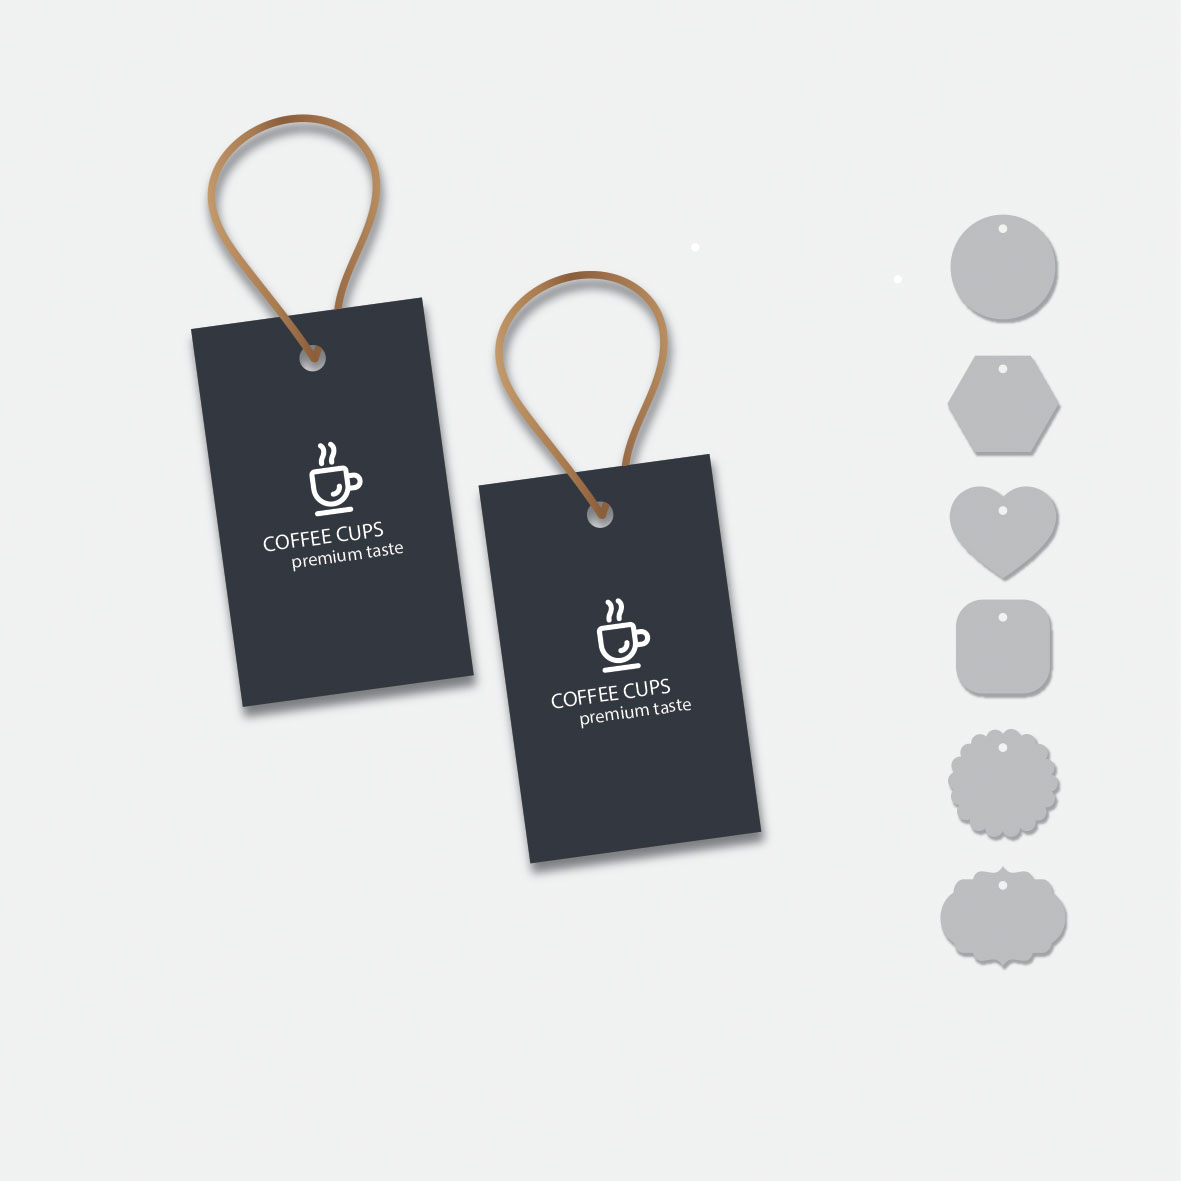 Product Tags Printing Singapore